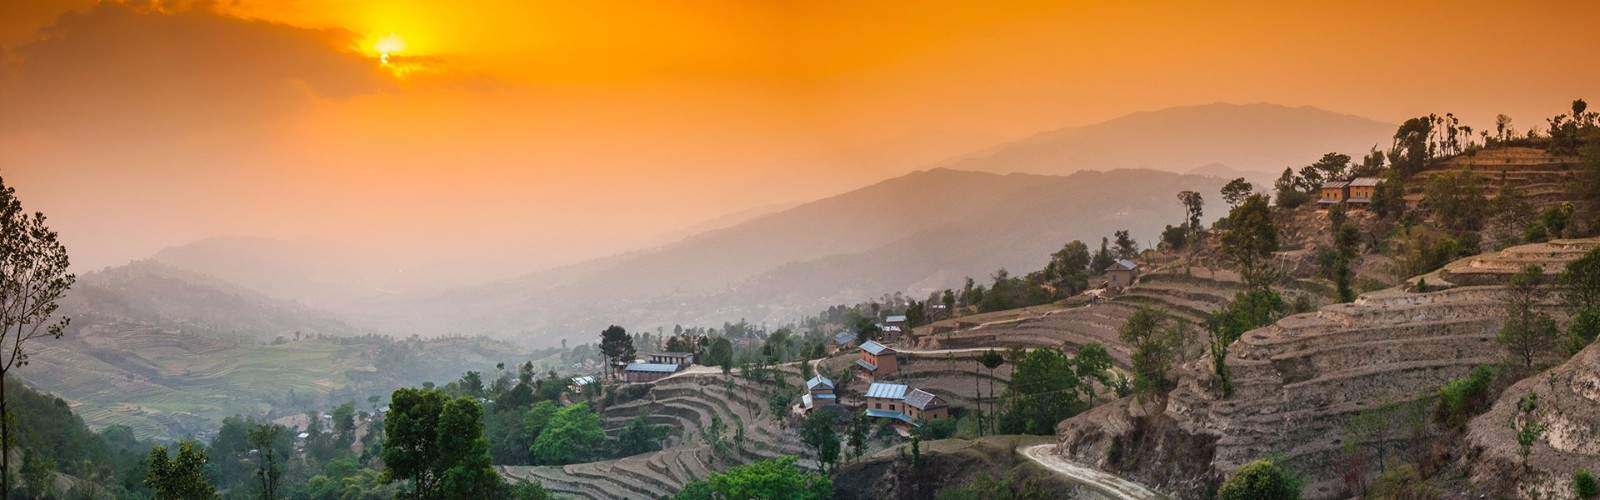 Taste of Nepal Tour | Wendy Wu Tours